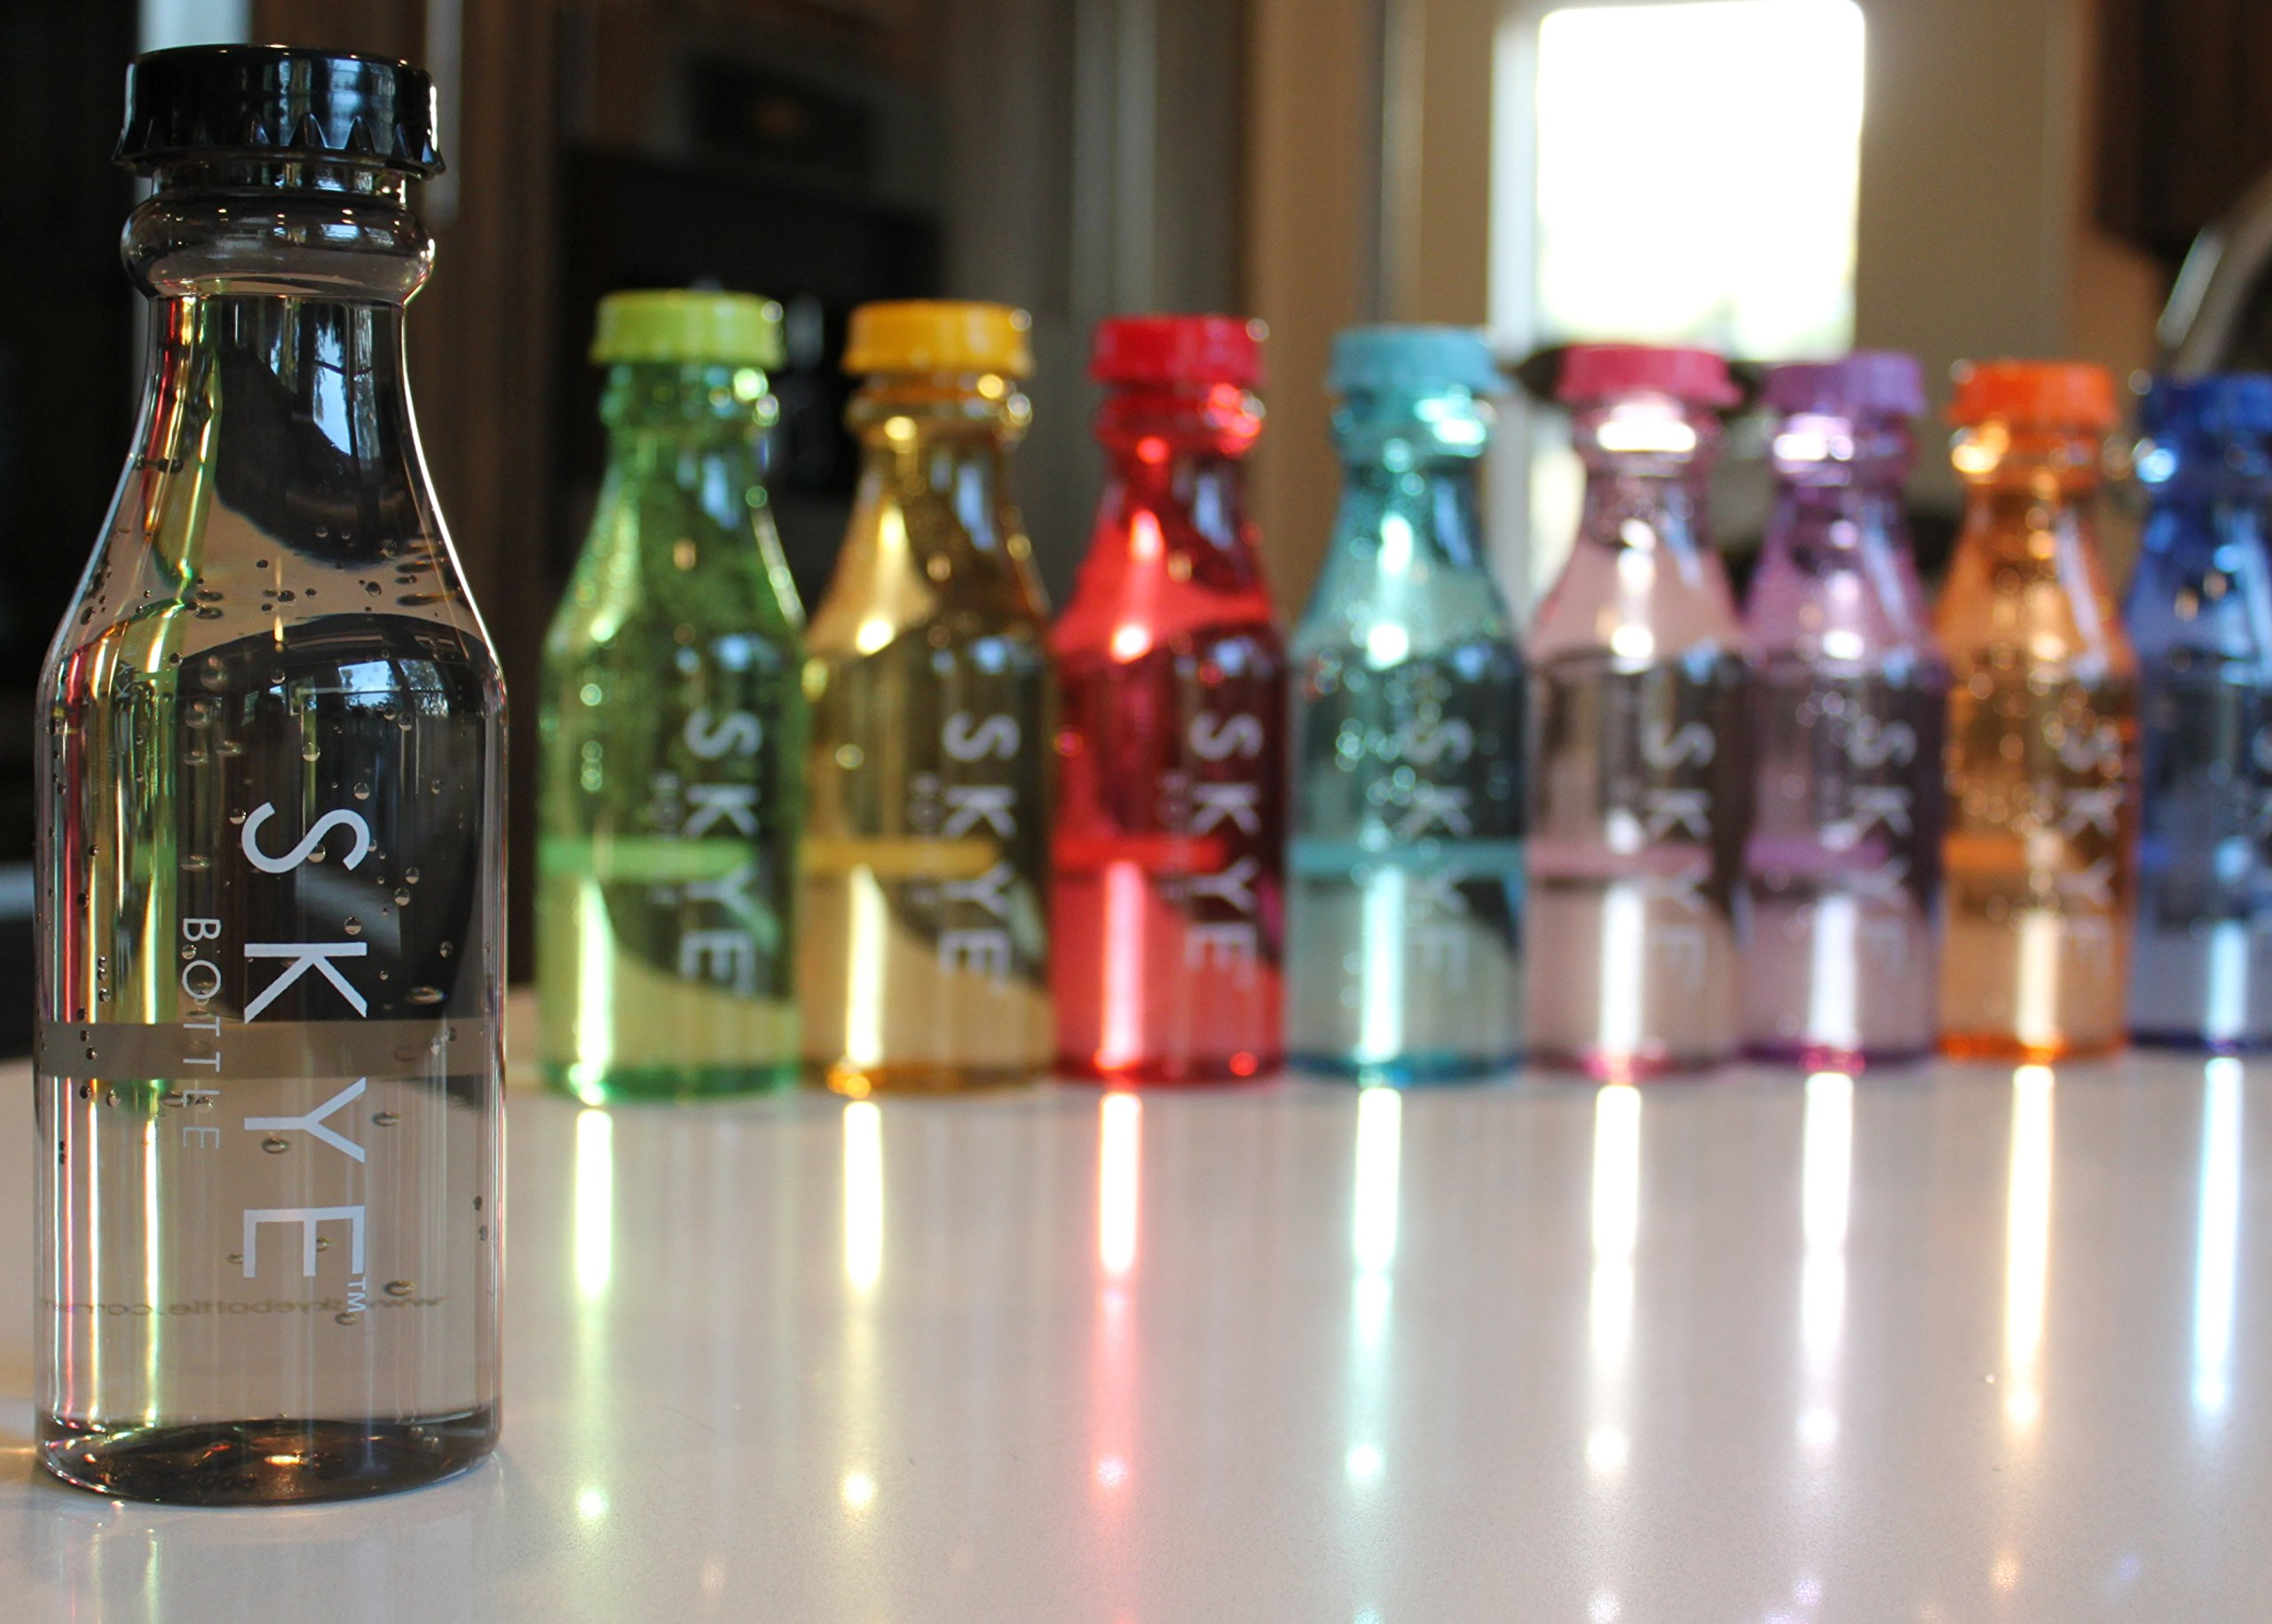 THE COOLEST WATER BOTTLE IN THE WORLD Frosted /& Transparent Soda Bottle Leak Proof BPA Free Sport Wide Mouth Blue Pink Green Black Purple Orange Yellow Red- For Kids Boys Girls Men Women Infuse with Fruits or Ice for Office Gym Beach Summe SKYE Bottle